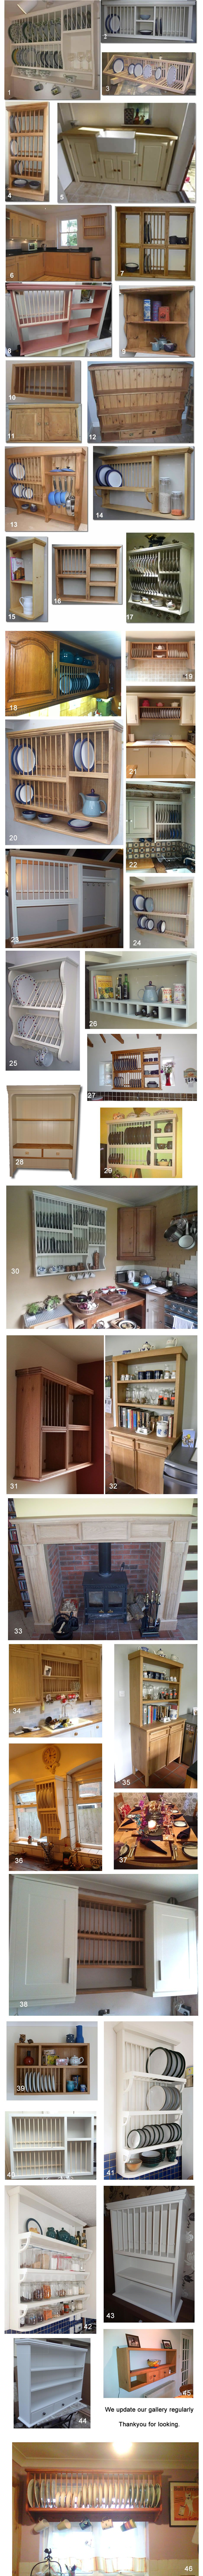 The Plate Rack Co. - Hand Crafted Bespoke Kitchen Furniture & The Plate Rack Co. - Hand Crafted Bespoke Kitchen Furniture ...